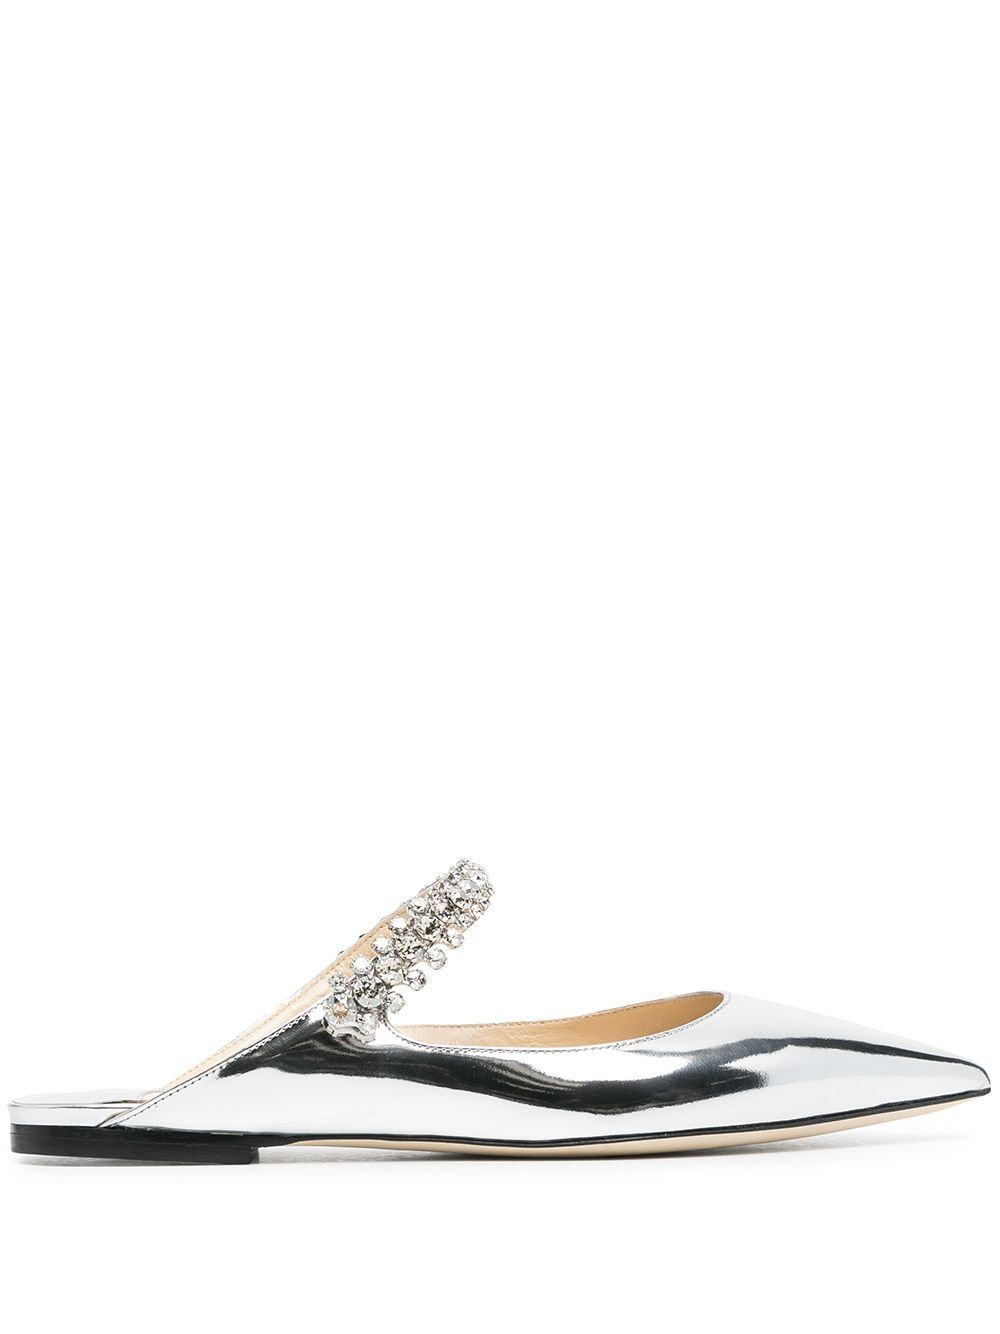 Jimmy Choo Crystals JIMMY CHOO WOMEN'S SILVER LEATHER SANDALS